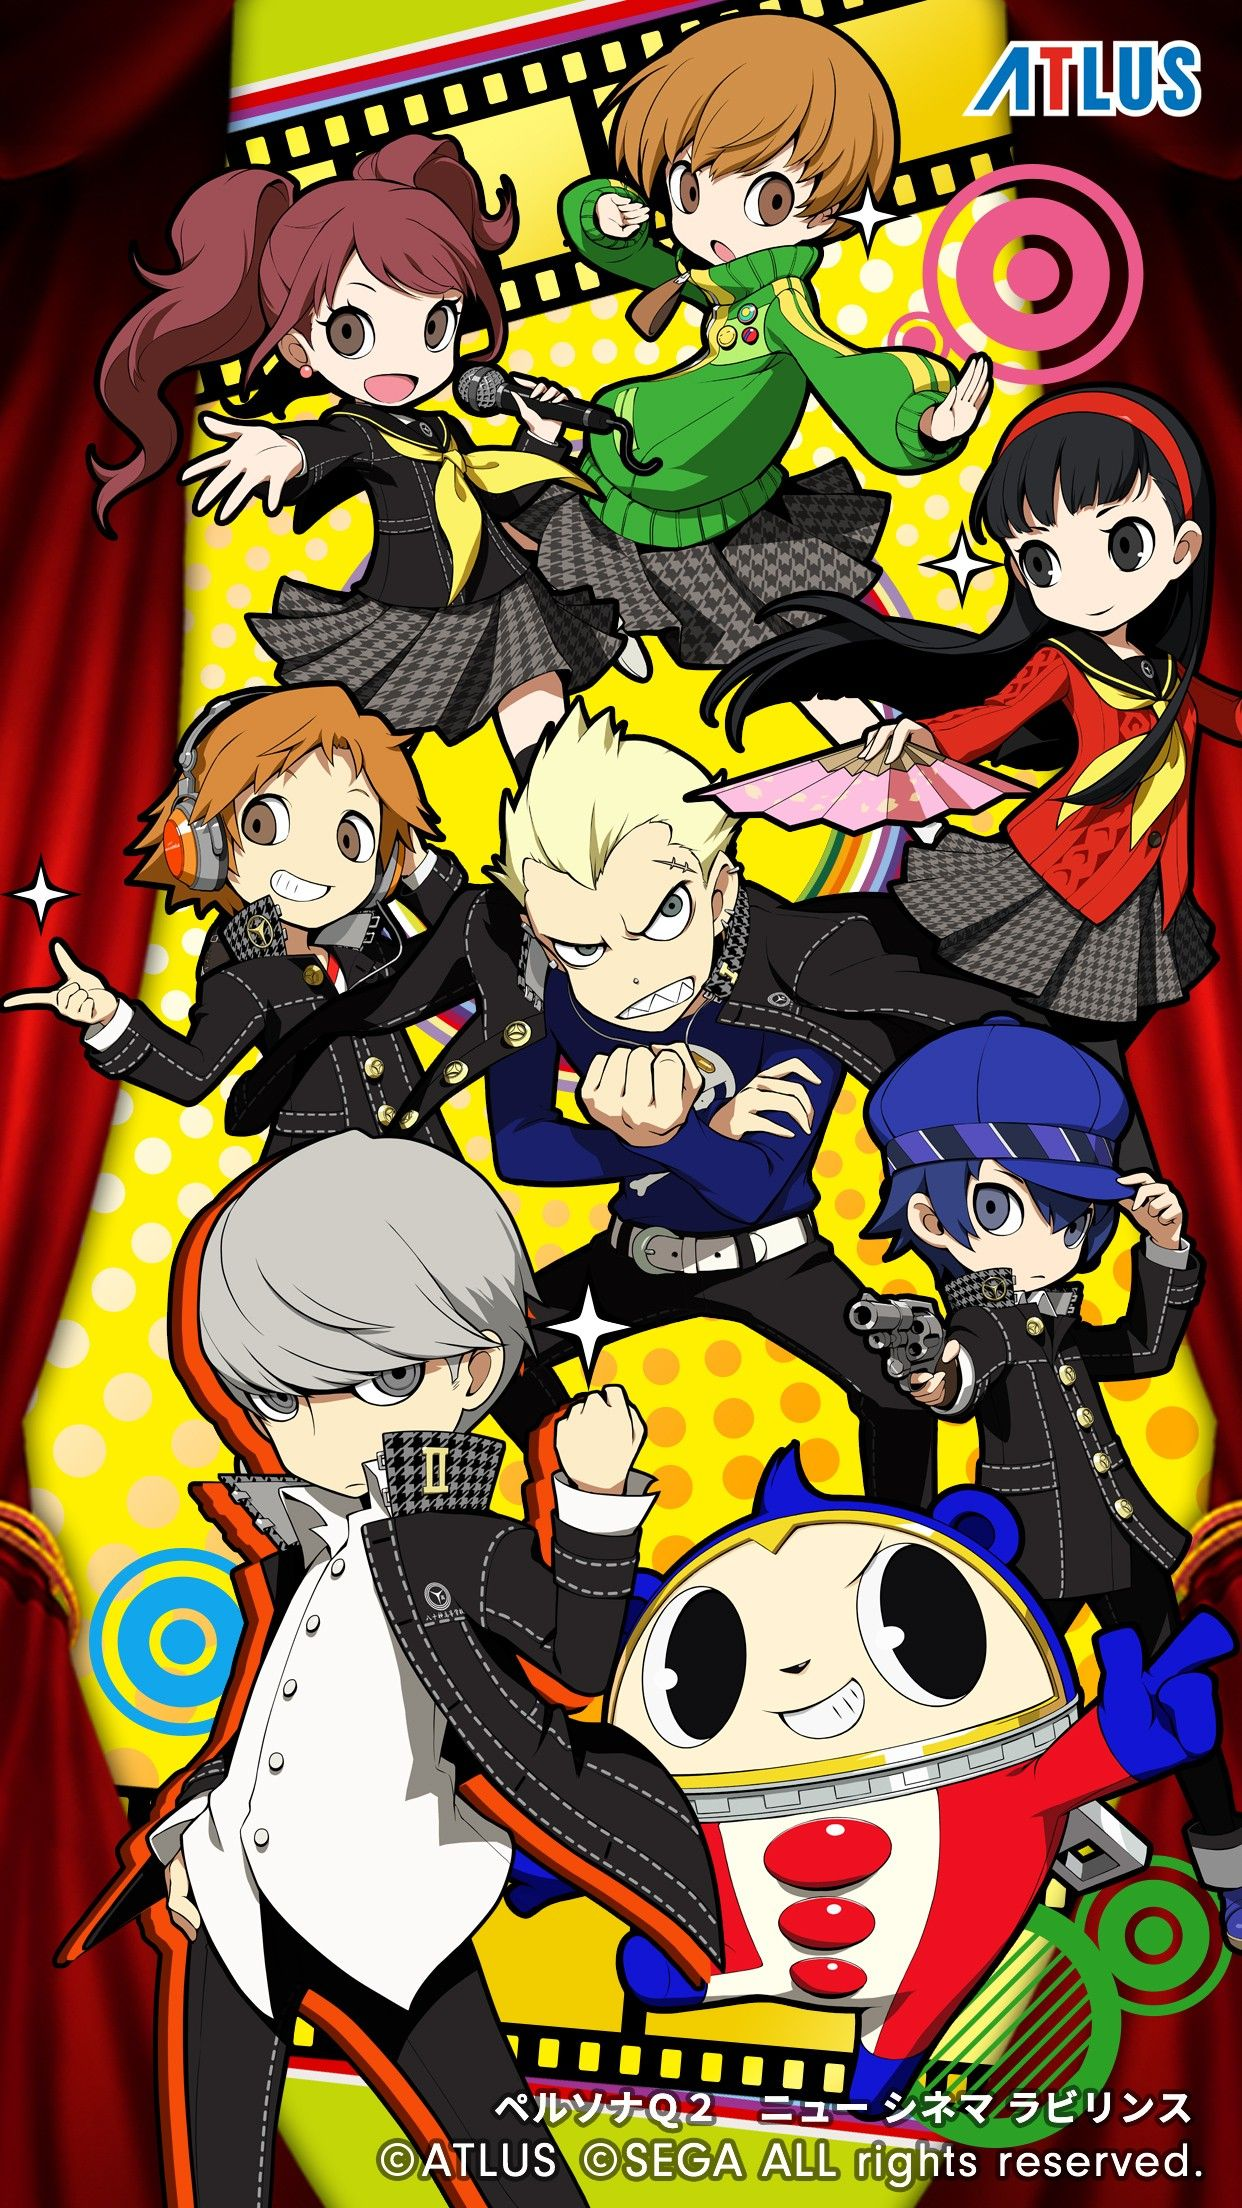 Persona Q2 New Cinema Labryinth Persona 4 キャラクターデザイン